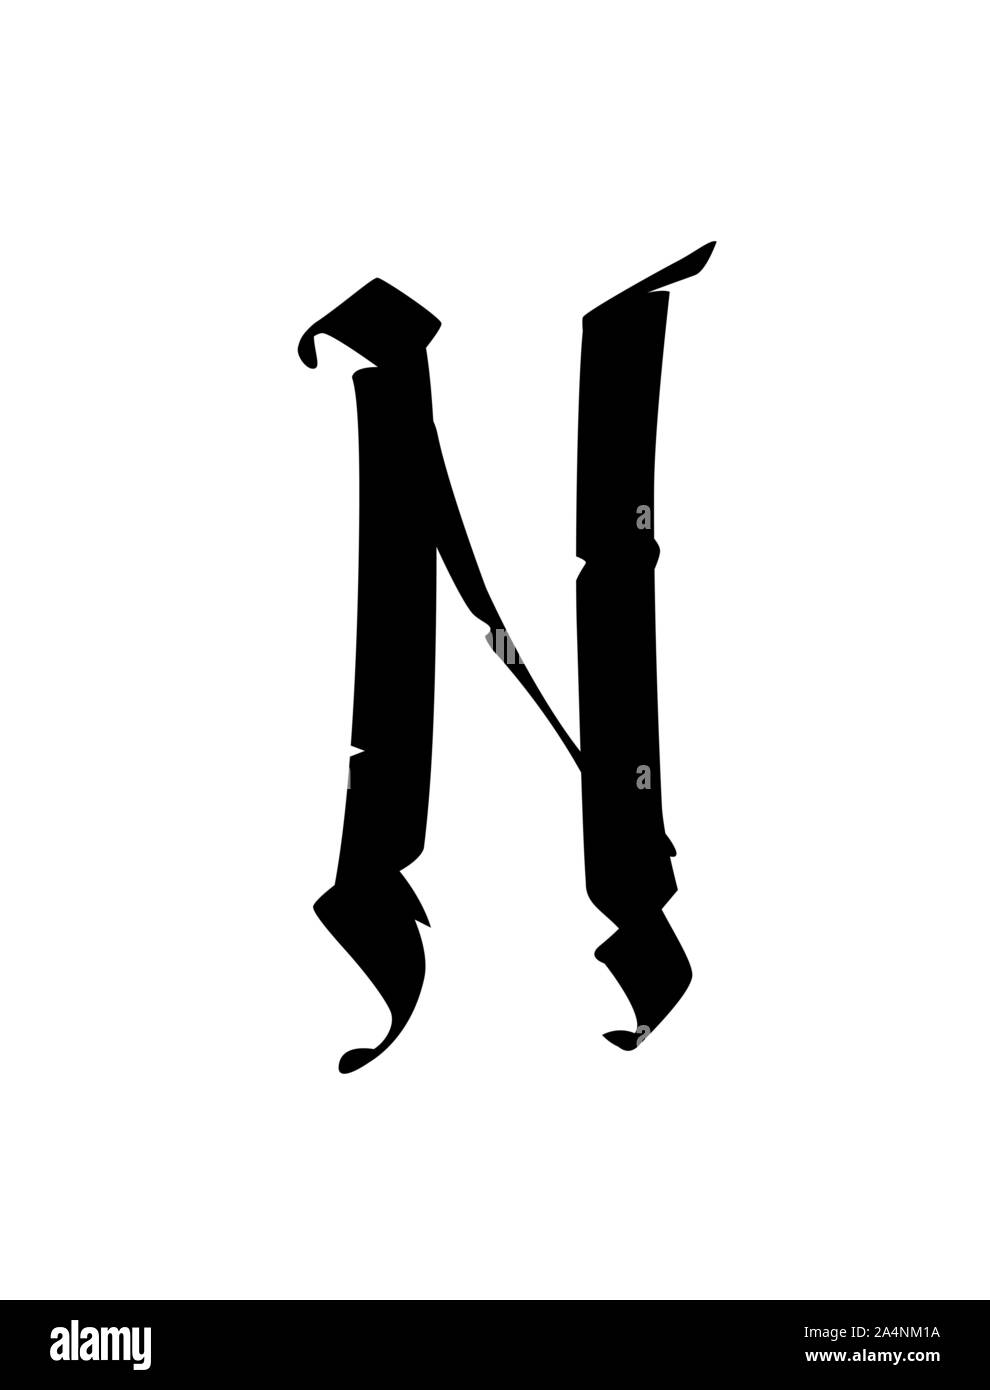 N In Calligraphy : calligraphy, Letter, Gothic, Style., Vector., Alphabet., Symbol, Isolated, Golden, Background., Calligraphy, Lettering., Medieval, Latin, Letter., Stock, Vector, Image, Alamy